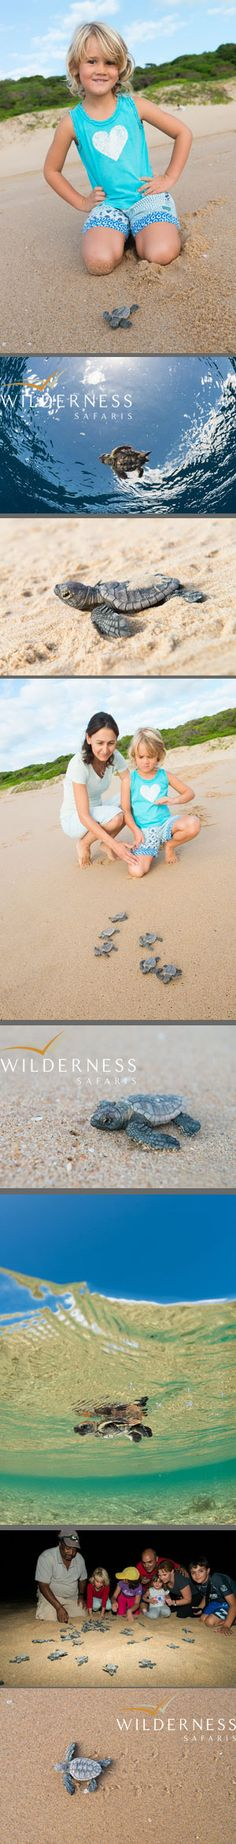 Rocktail Beach Camp - February 2013 - Some 60 leatherback and 100 loggerhead hatchlings were seen this month at Rocktail. Click on the image for the full story.